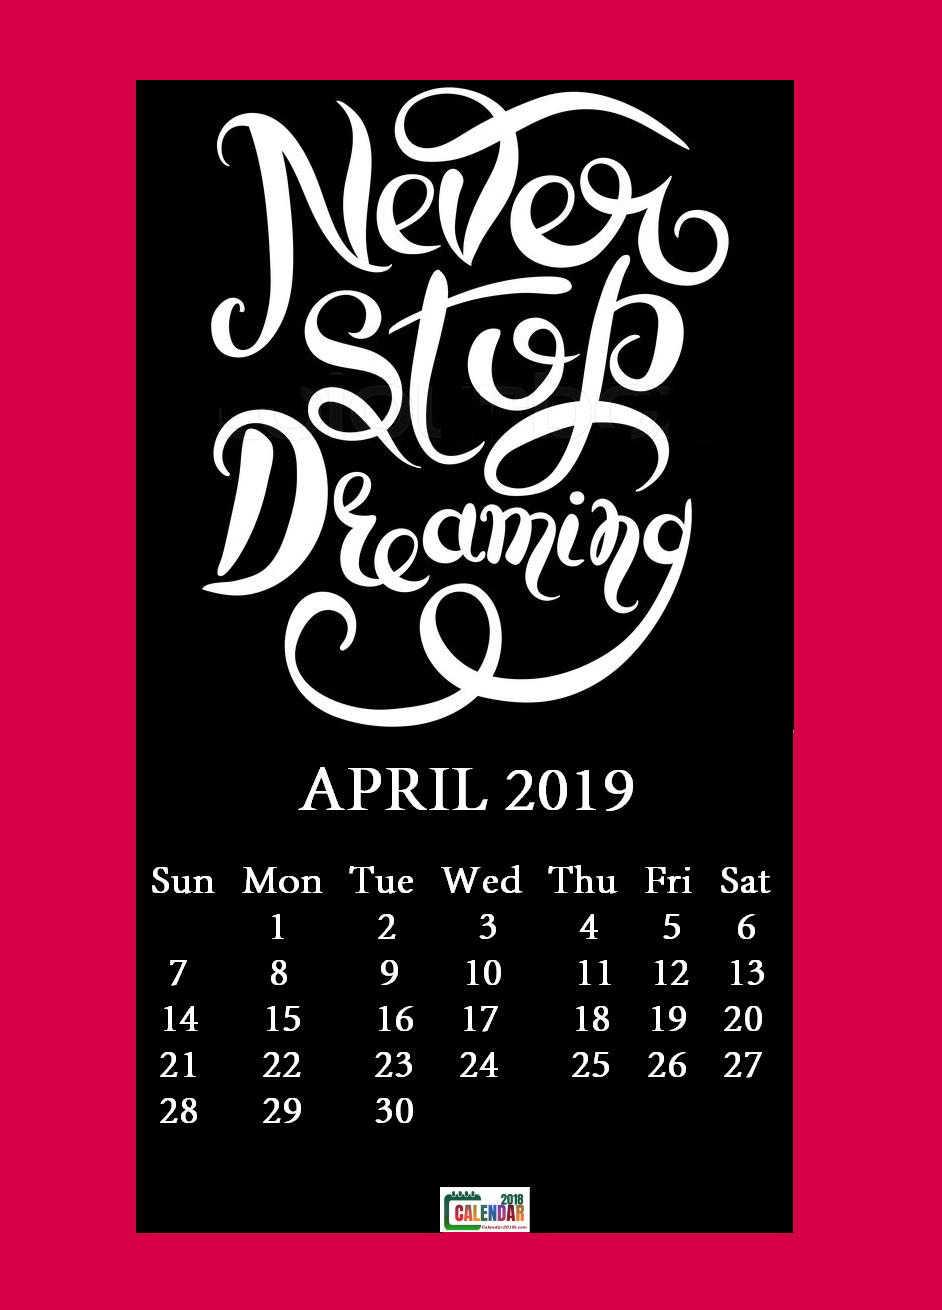 April 2019 Motivational Quotes Calendar